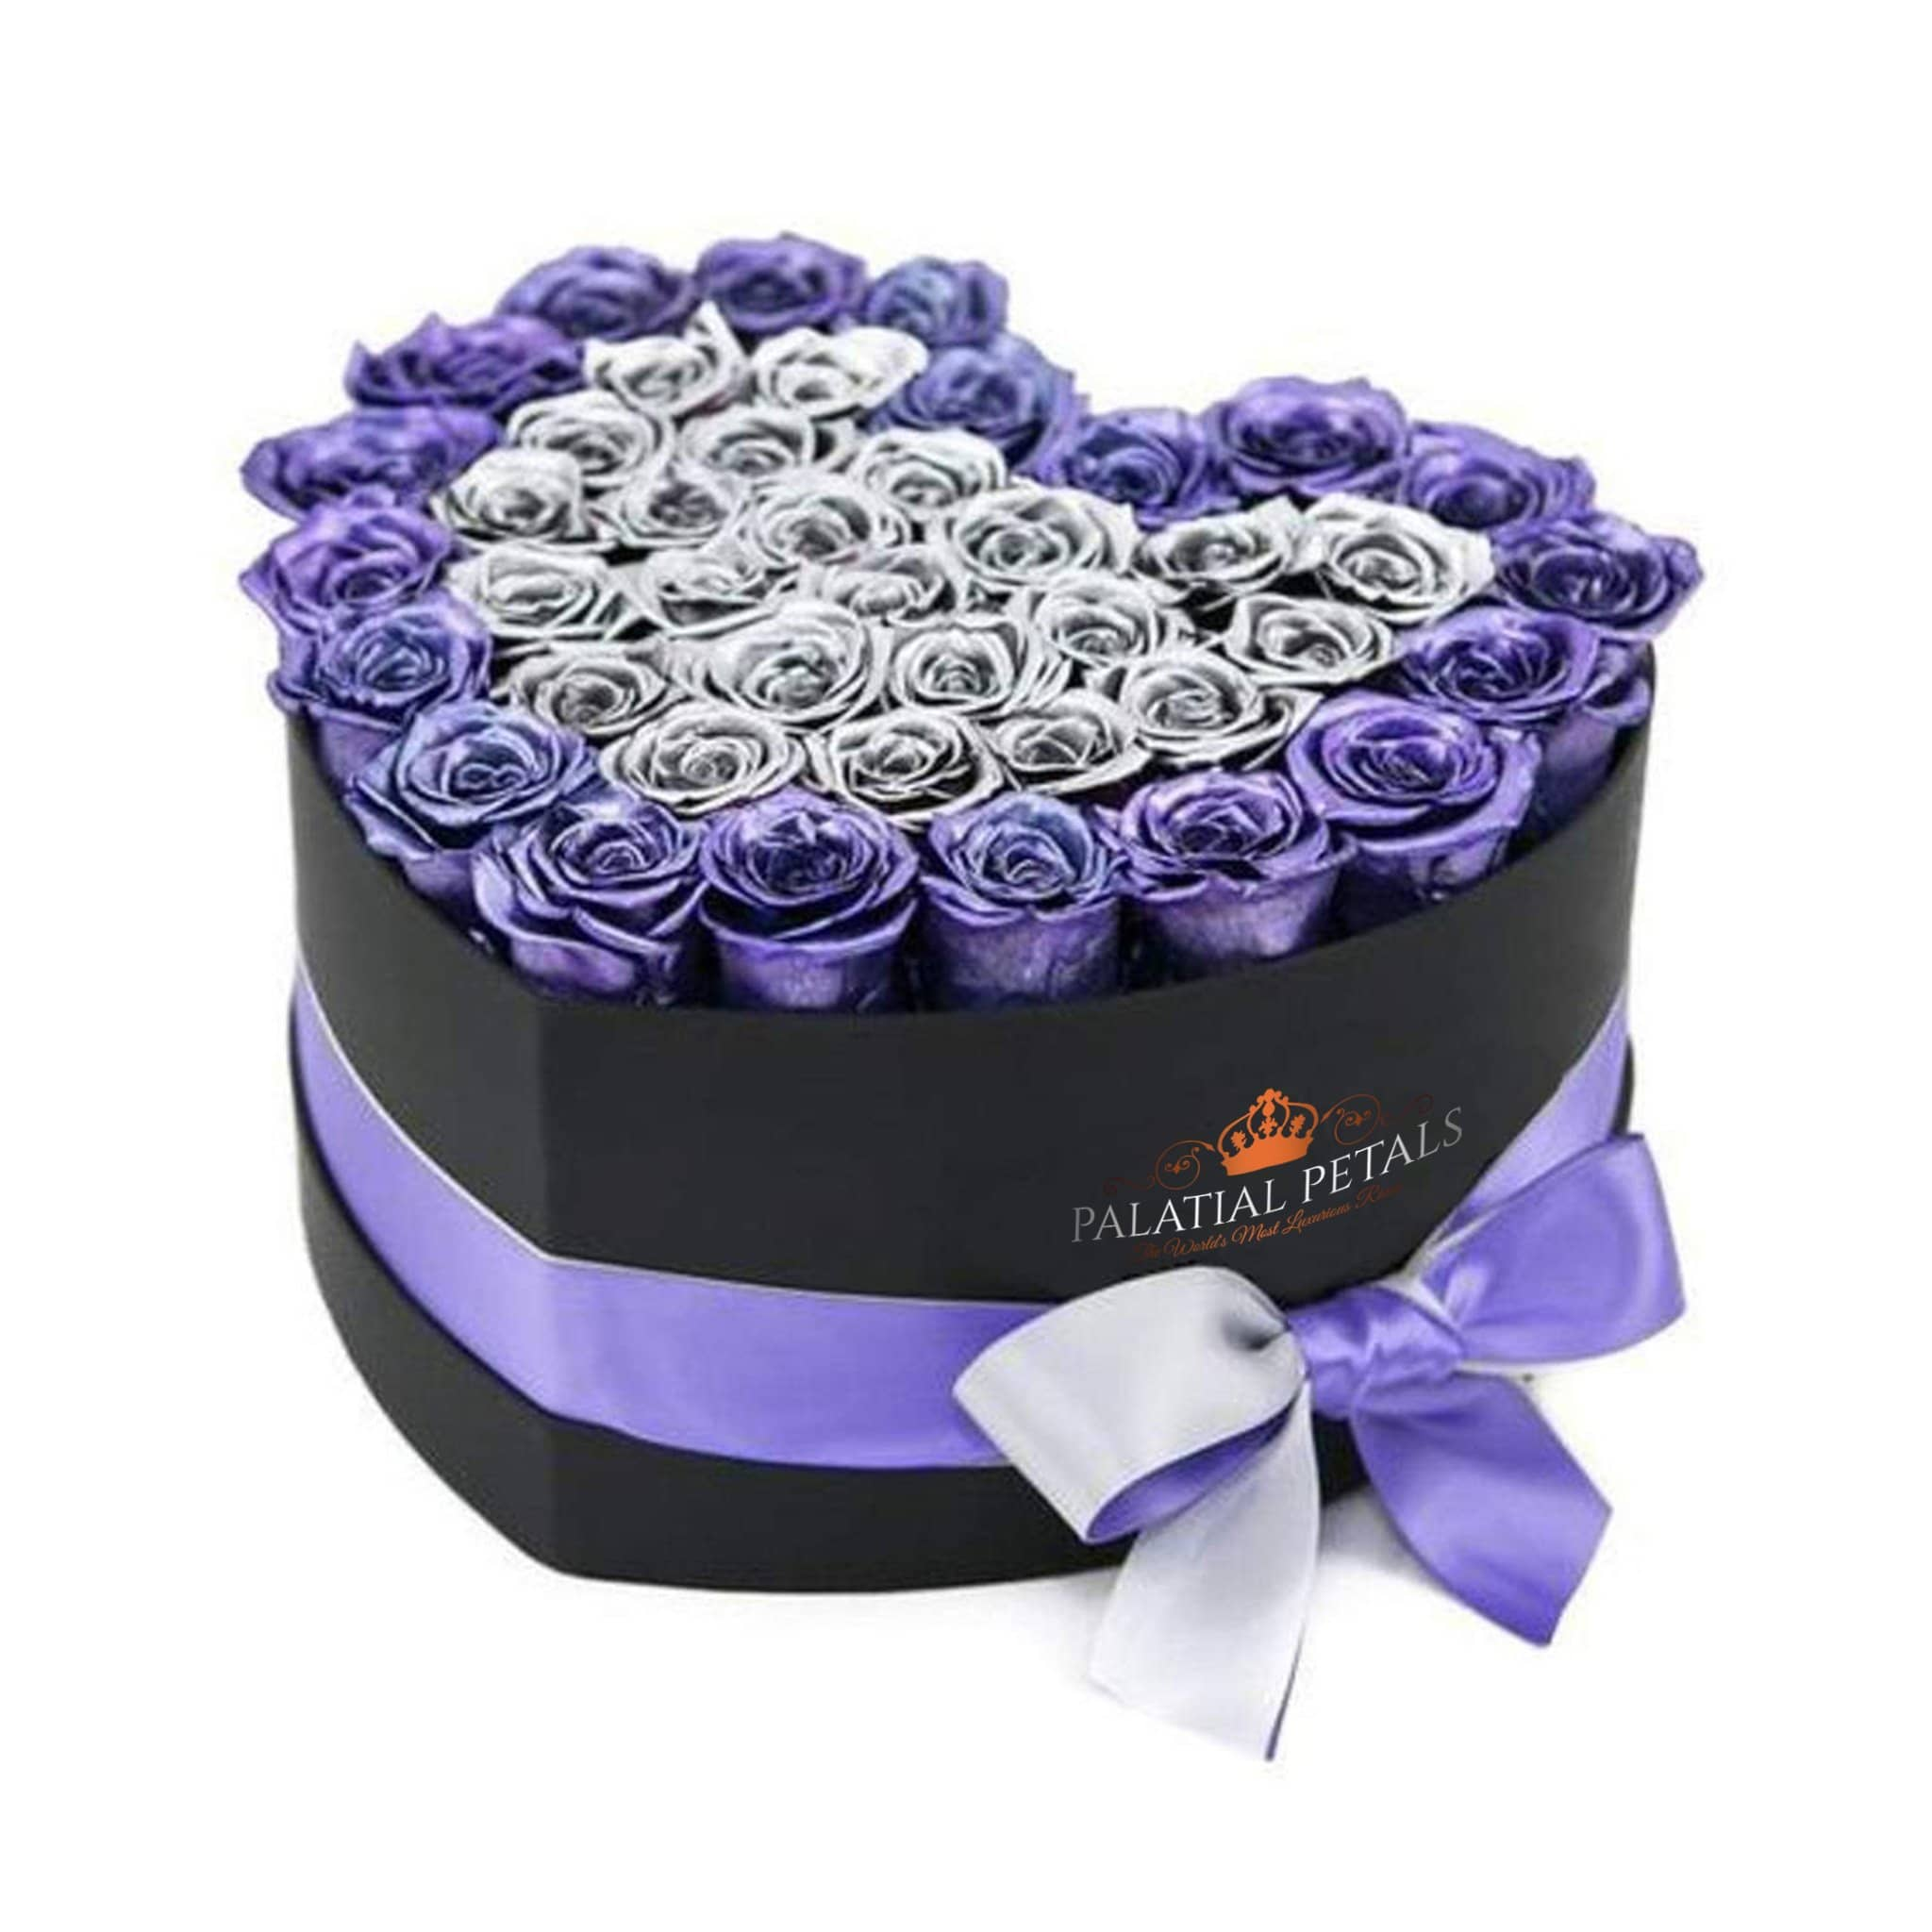 Metallic Purple & Silver Roses That Last A Year - Love Heart Box